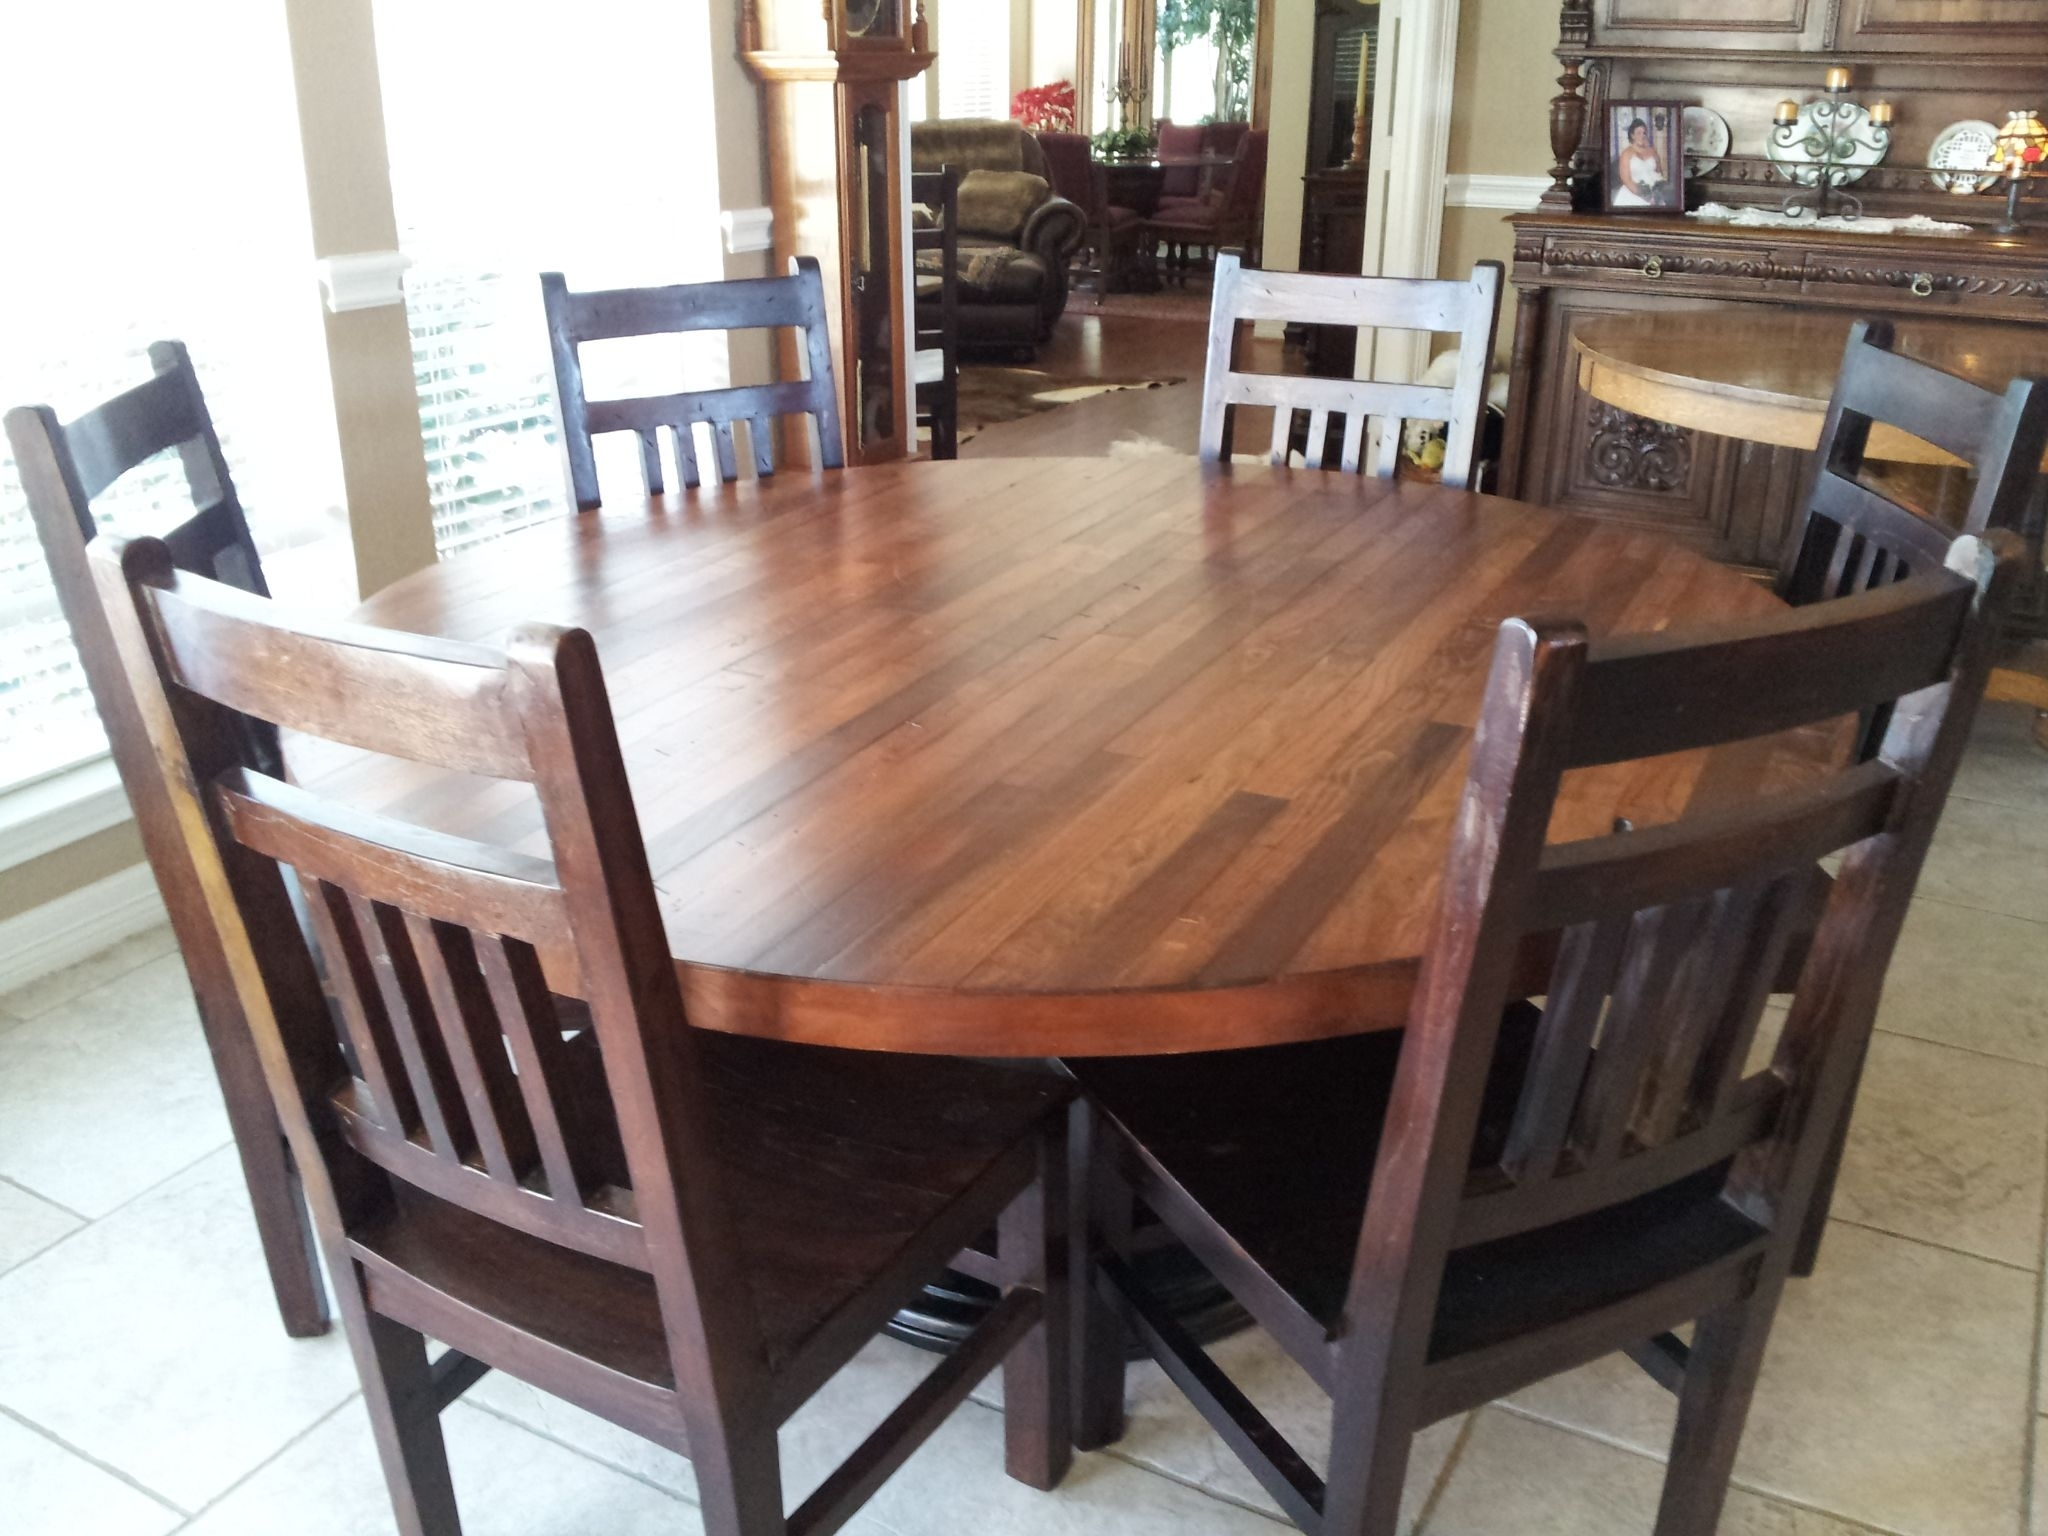 Round Dining And Kitchen Tables | Custommade Inside 2017 Craftsman Round Dining Tables (Image 12 of 20)